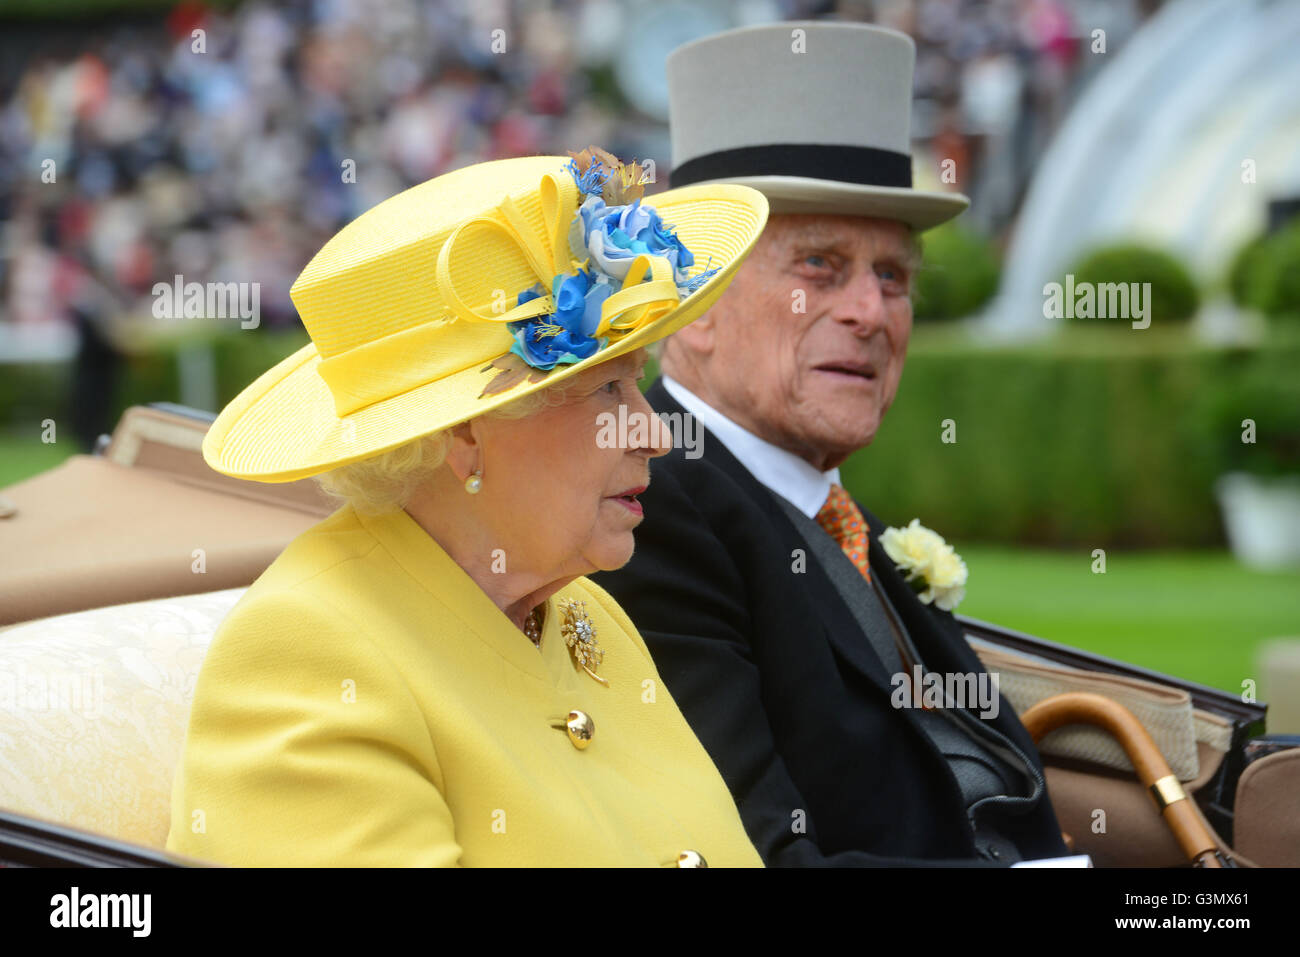 Ascot, Berkshire, UK. 14th June, 2016. HM Queen and Prince Philip arrive at Royal Ascot Racecourse 14 June 2016 Stock Photo